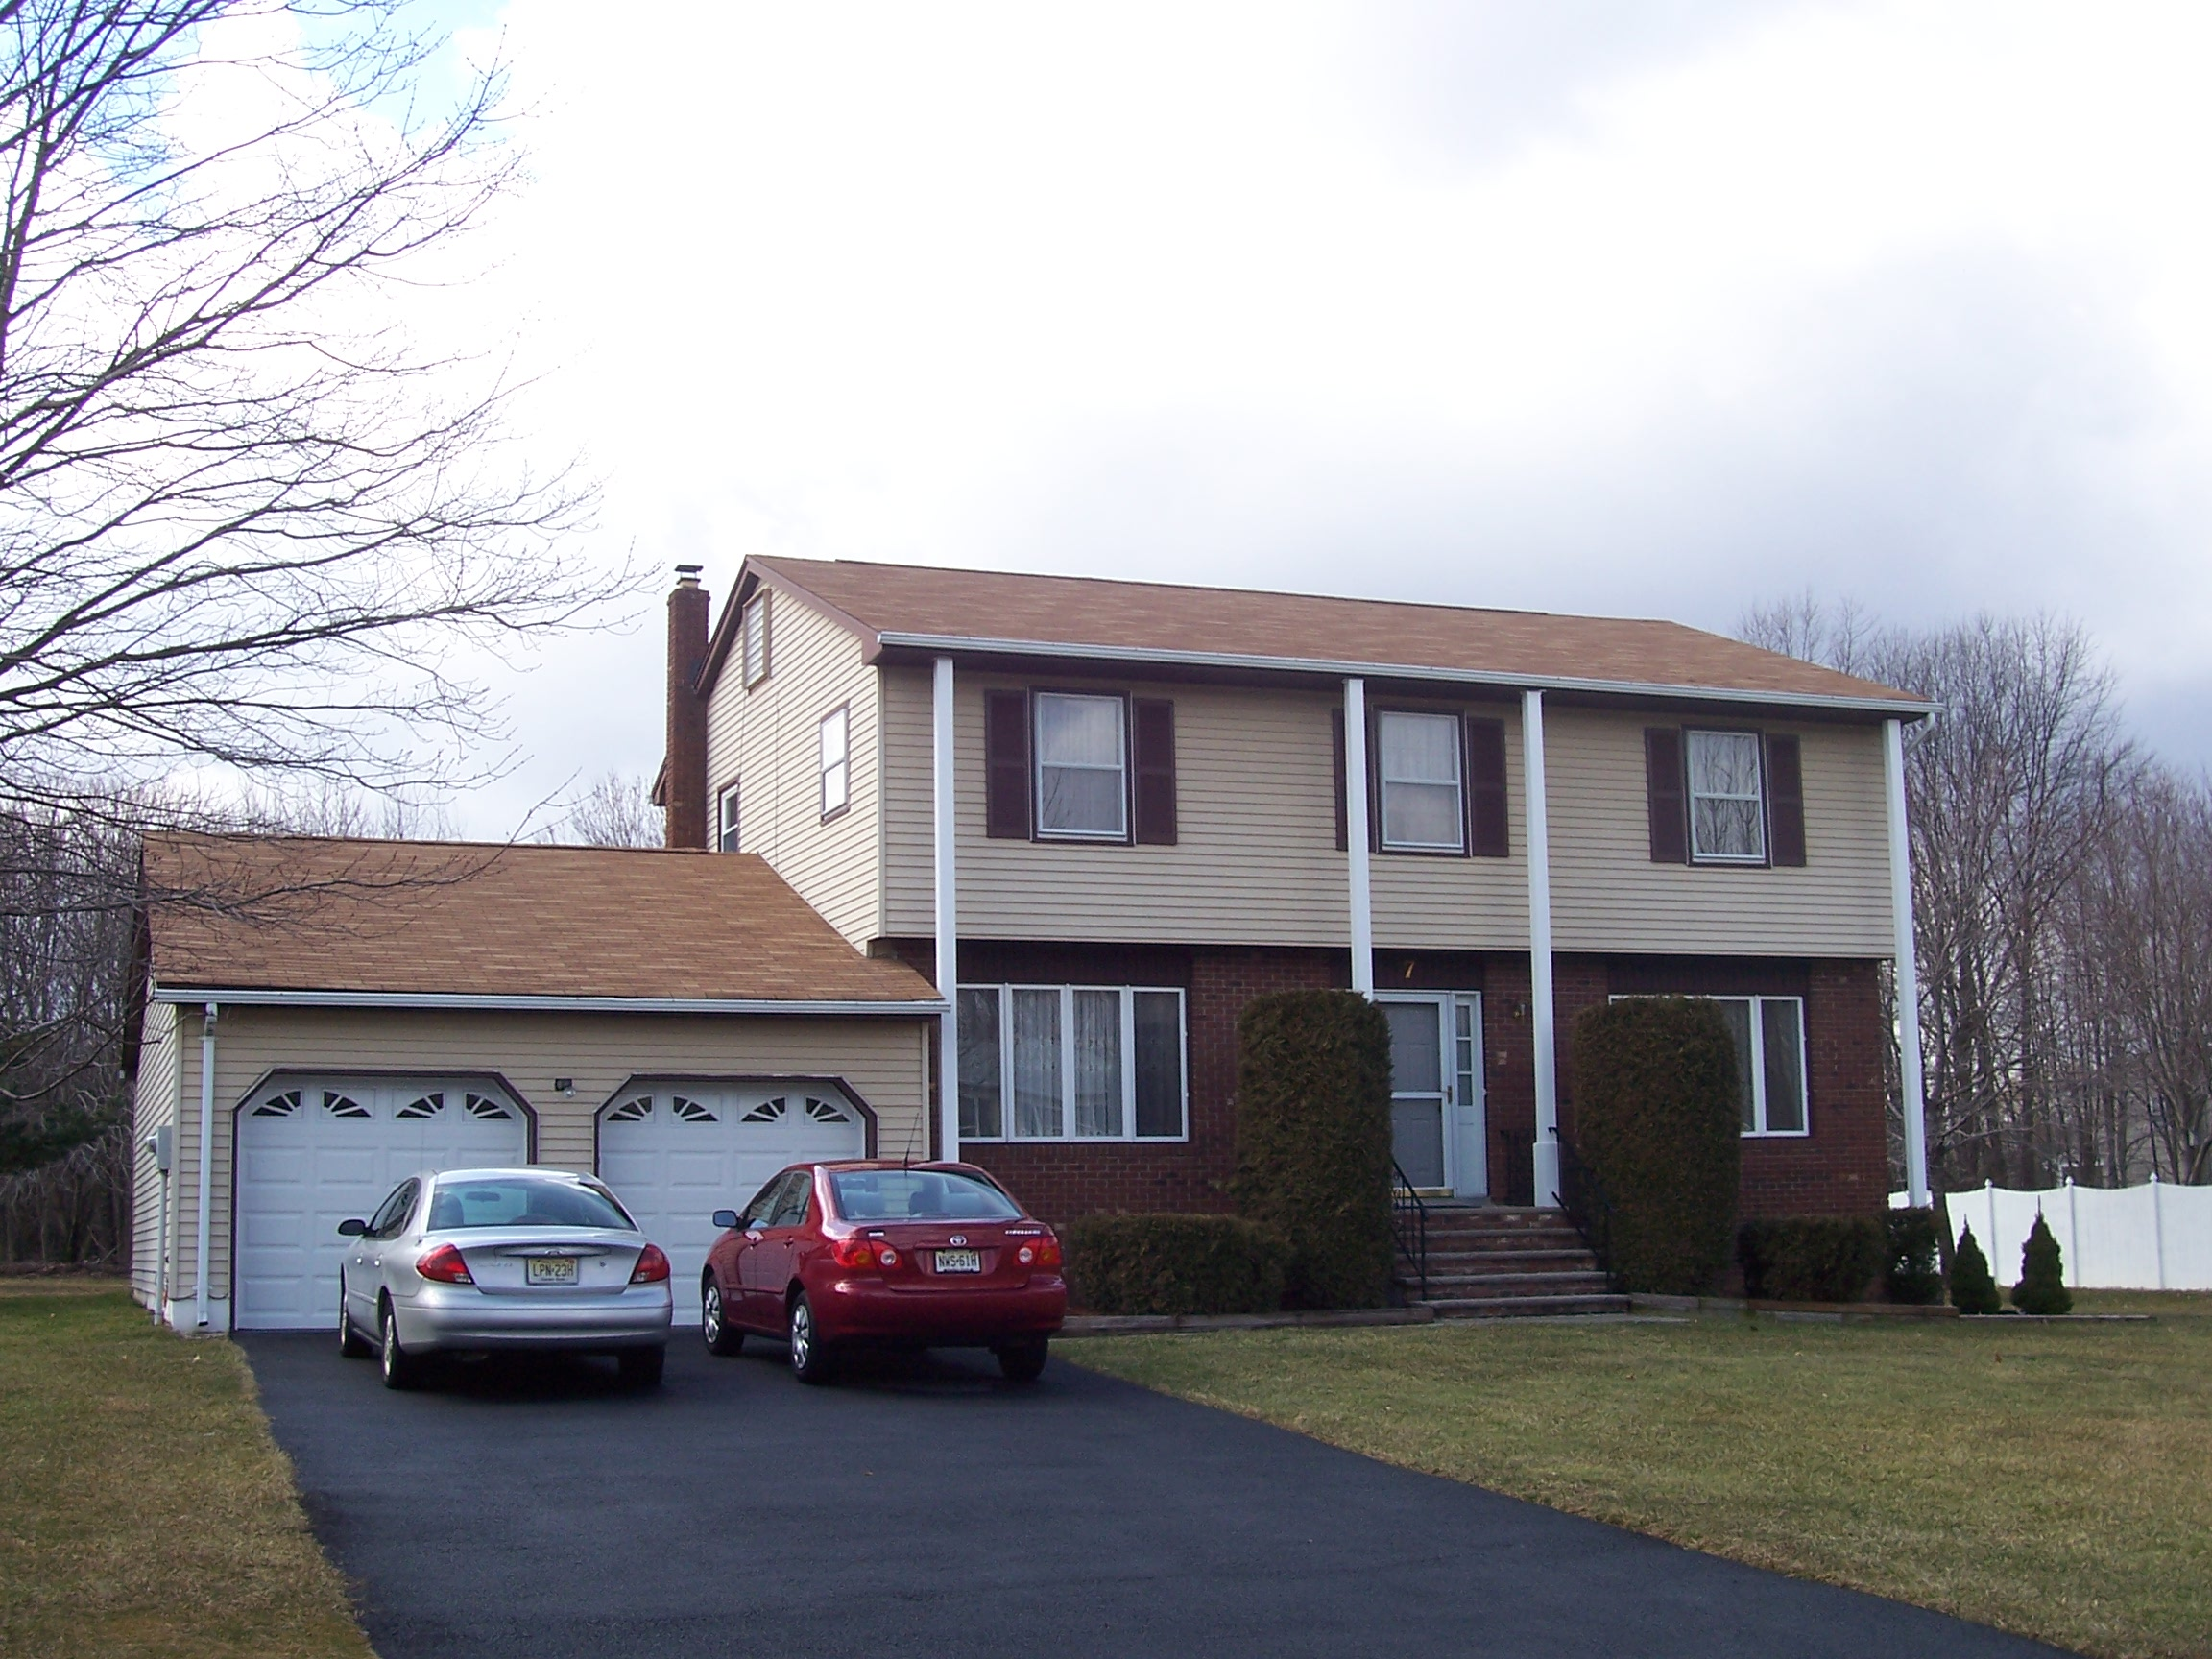 Homes for Sale in Roxbury Twp., NJ